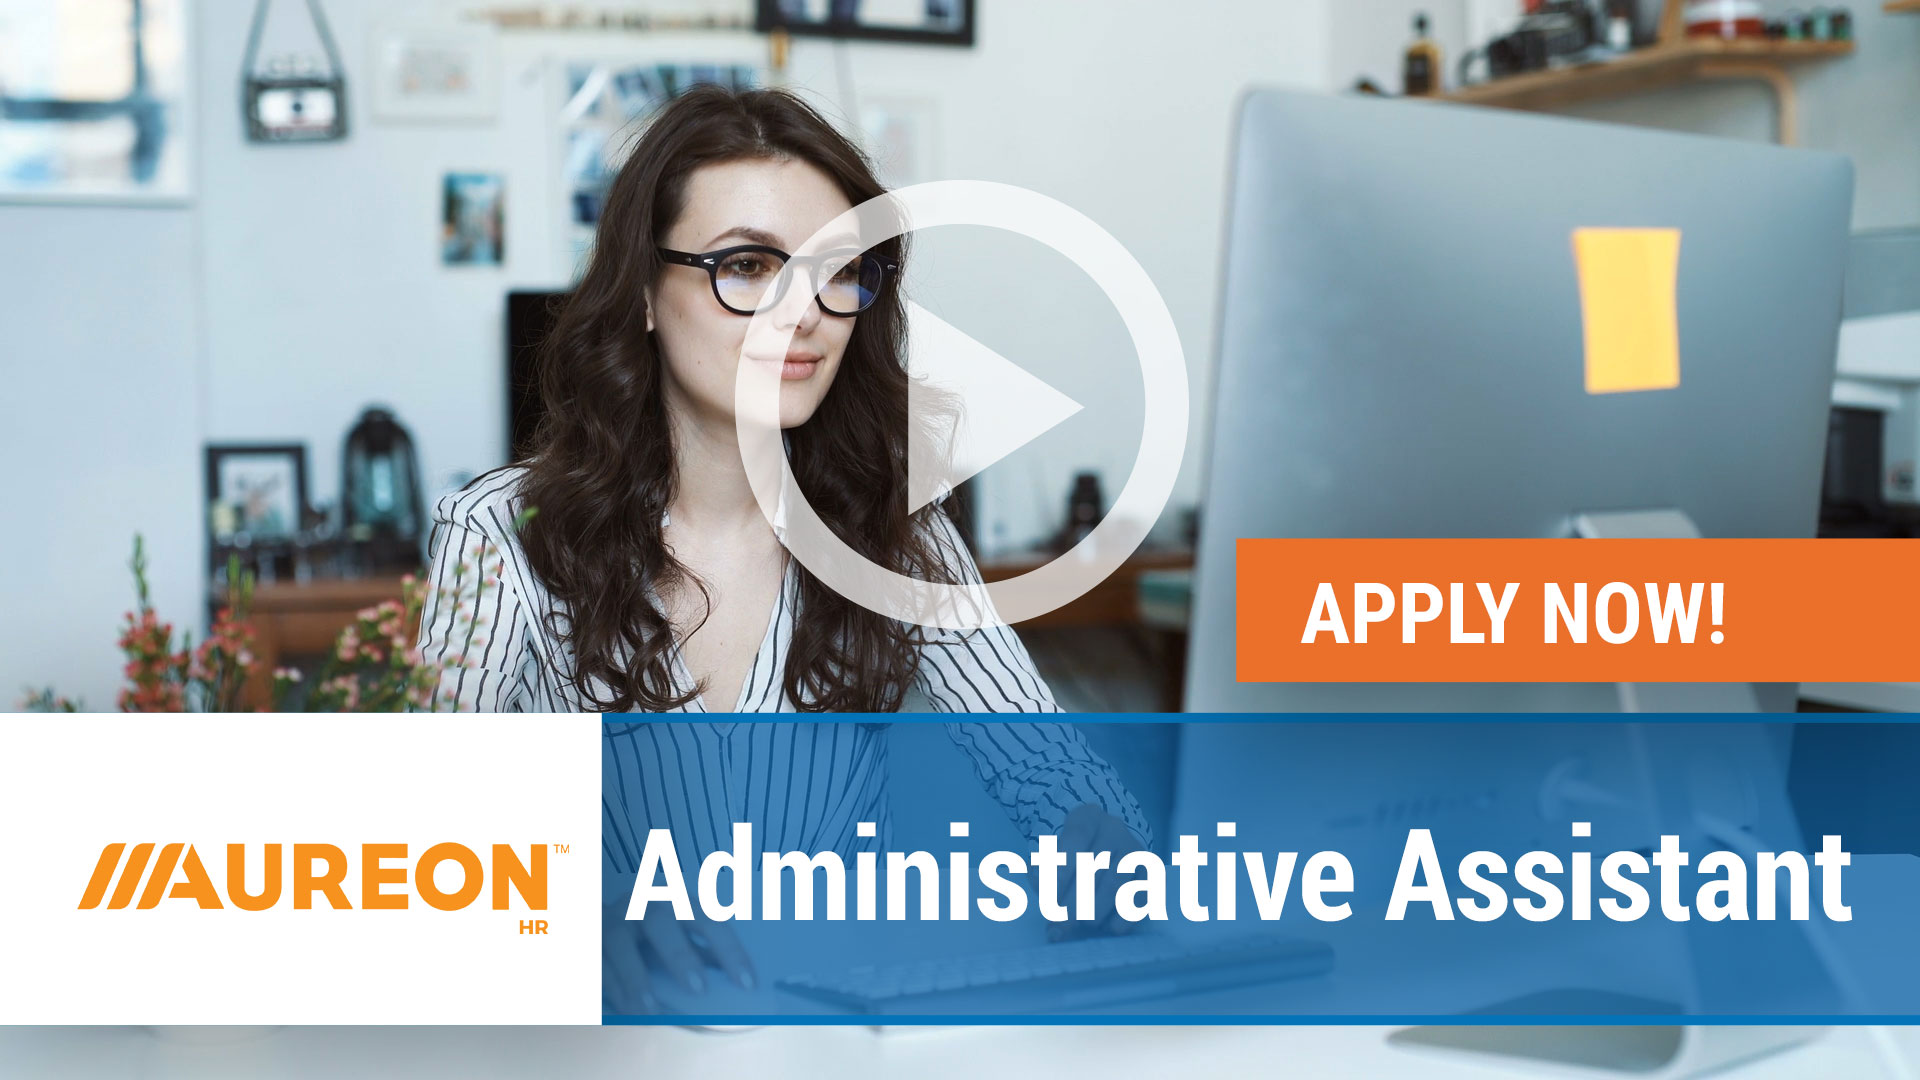 Watch our careers video for available job opening Administrative Assistant in Des Moines, Iowa